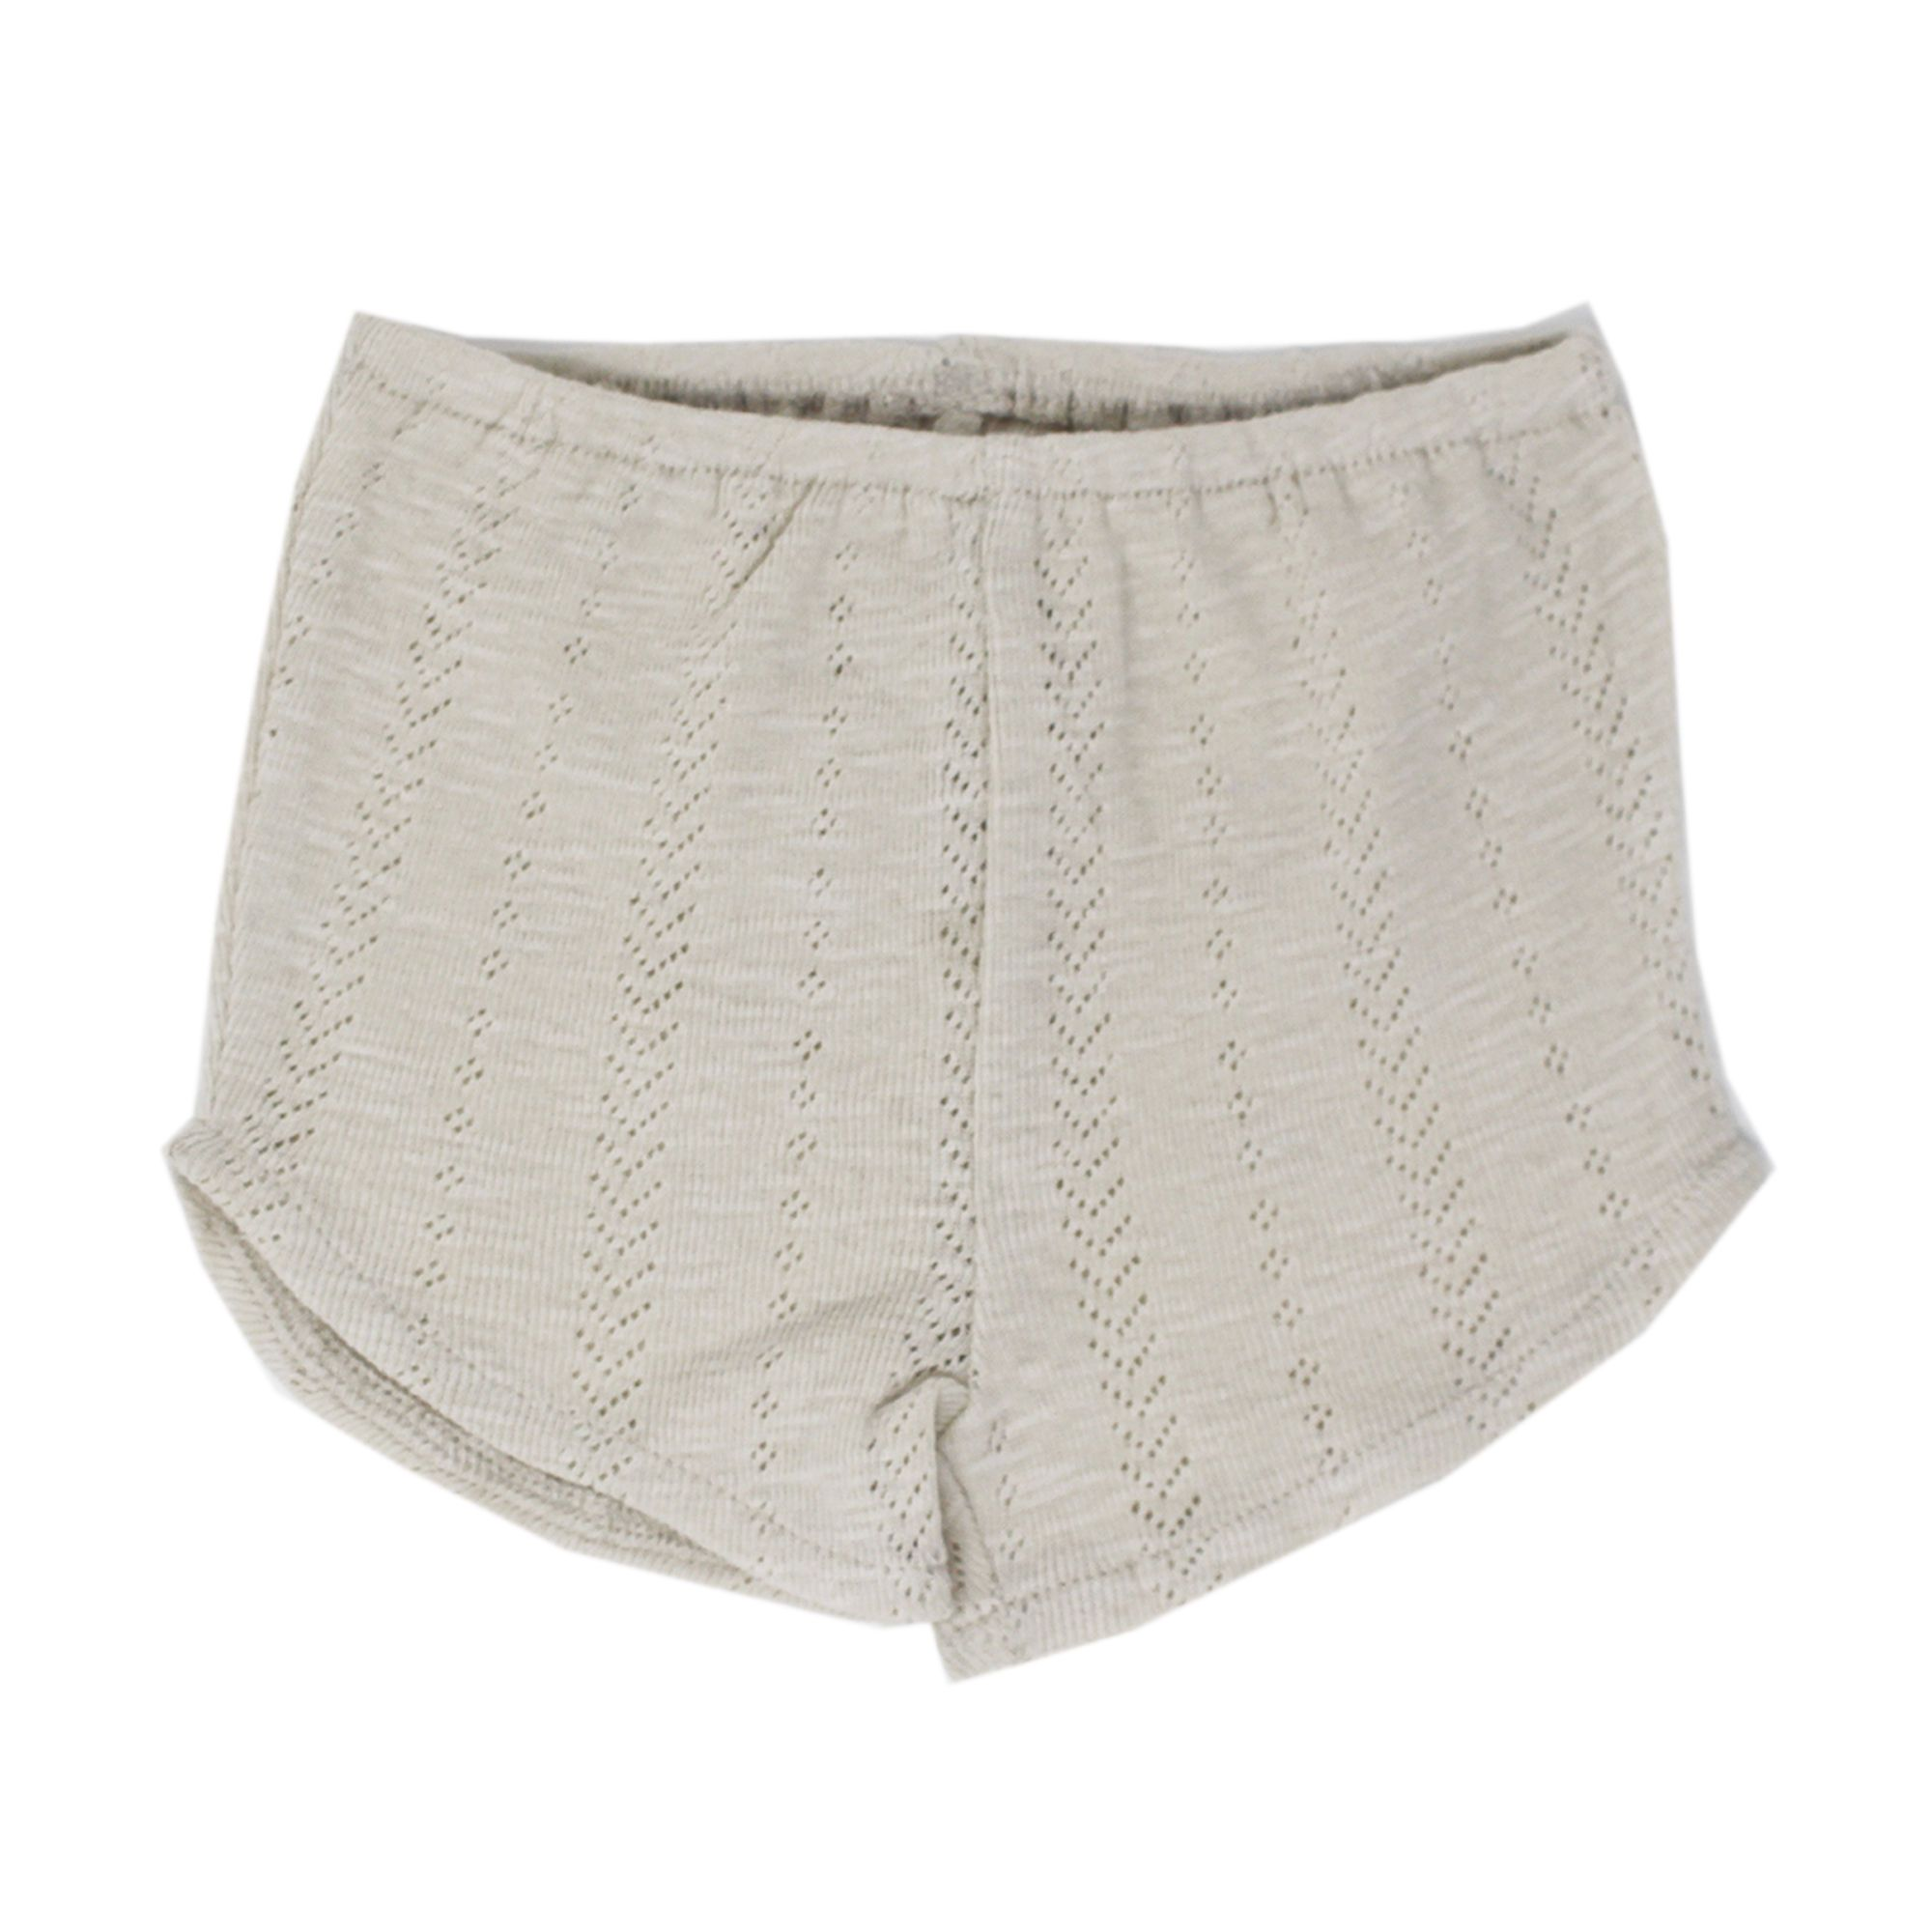 Kids Organic Cotton Pointelle Tap Shorts - Stone - Project Nursery